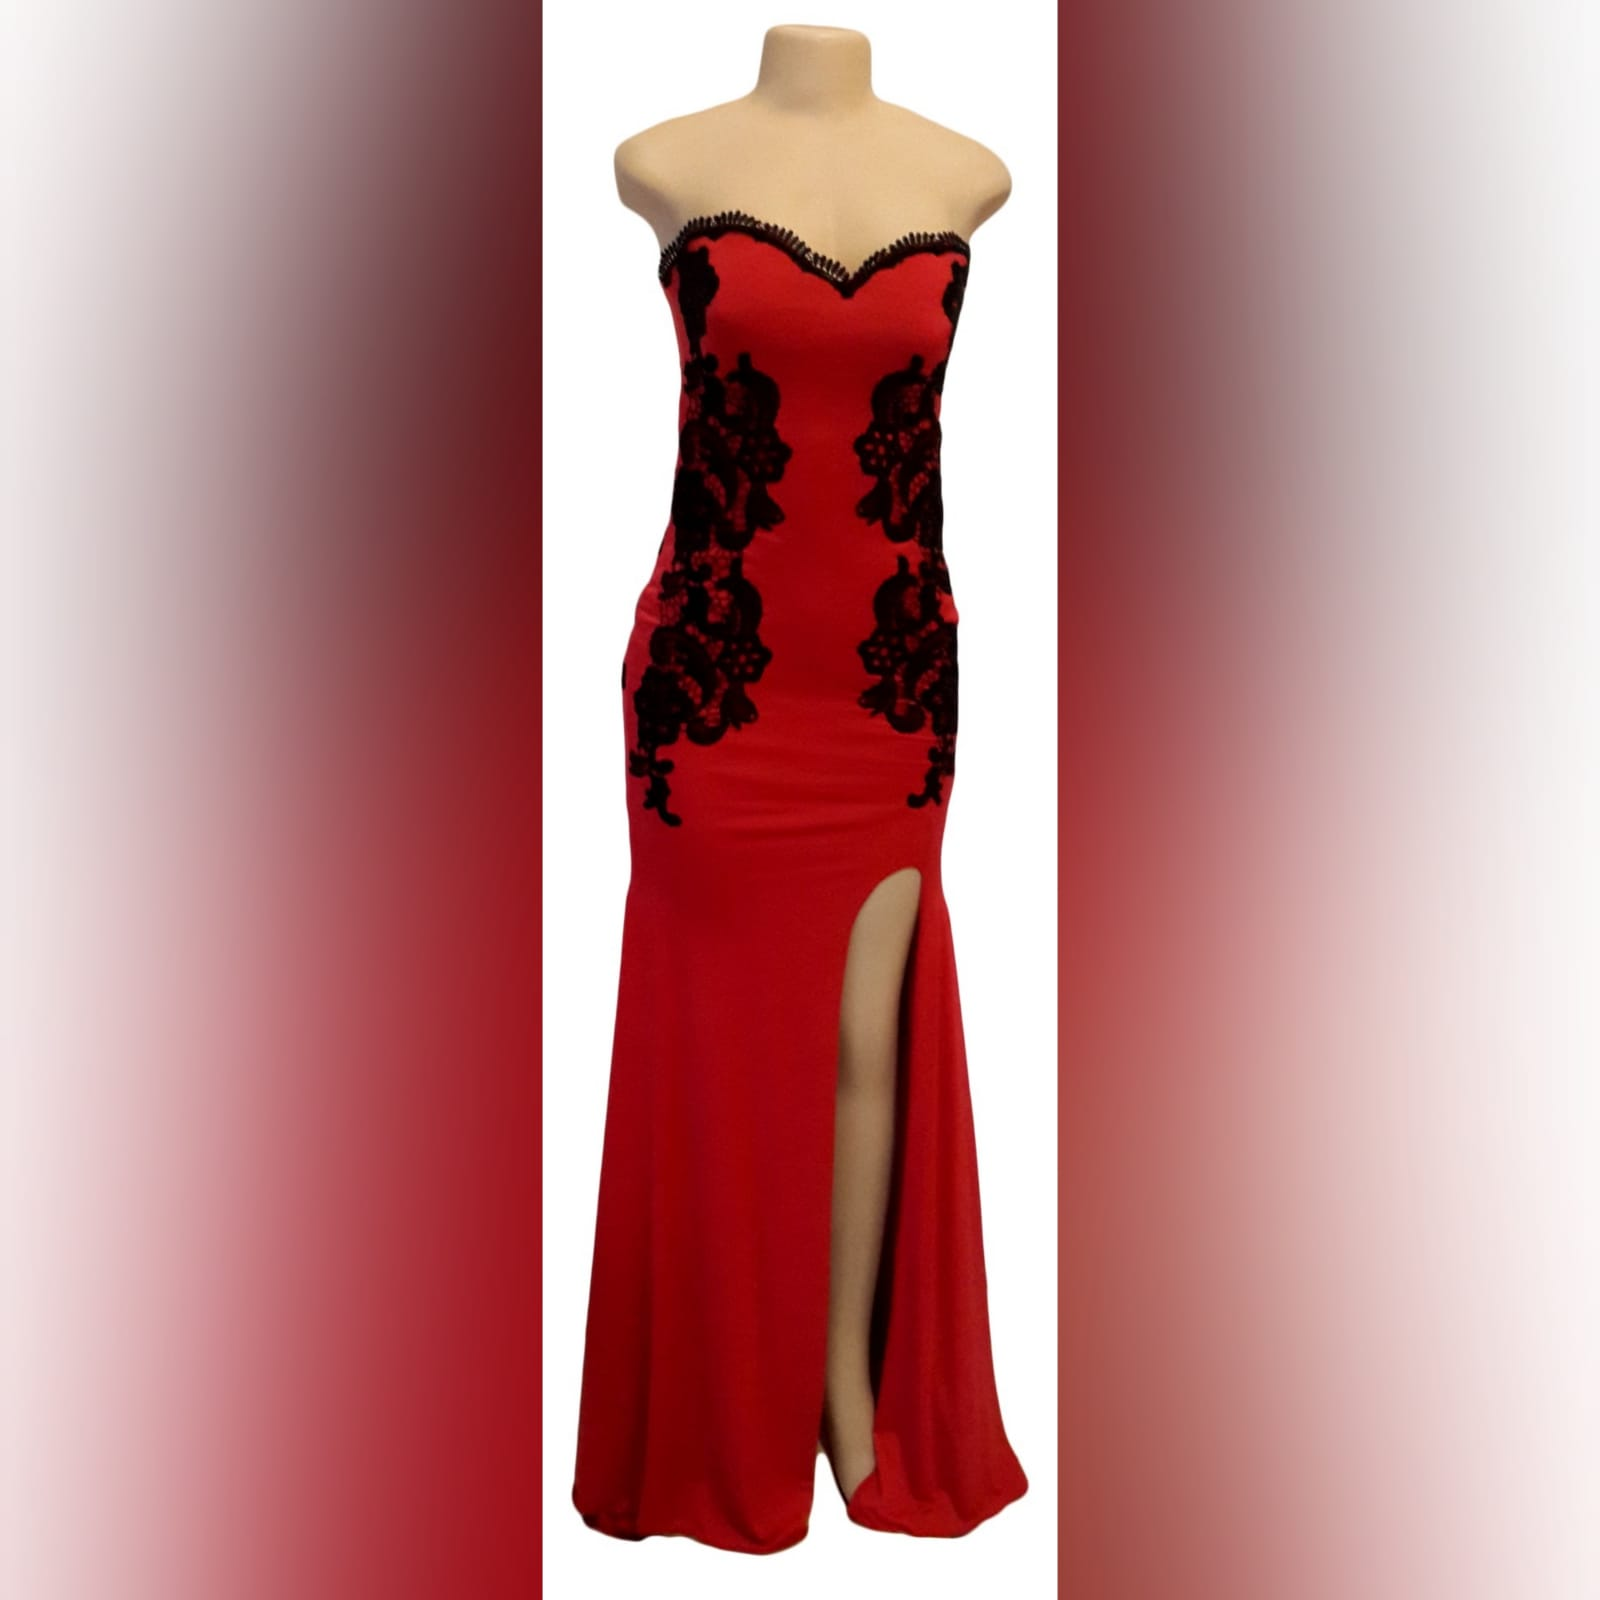 Red evening dress detailed with black lace 5 red evening dress detailed with black lace on the sides, front & back. With a sweetheart neckline finished with black scallop lace.